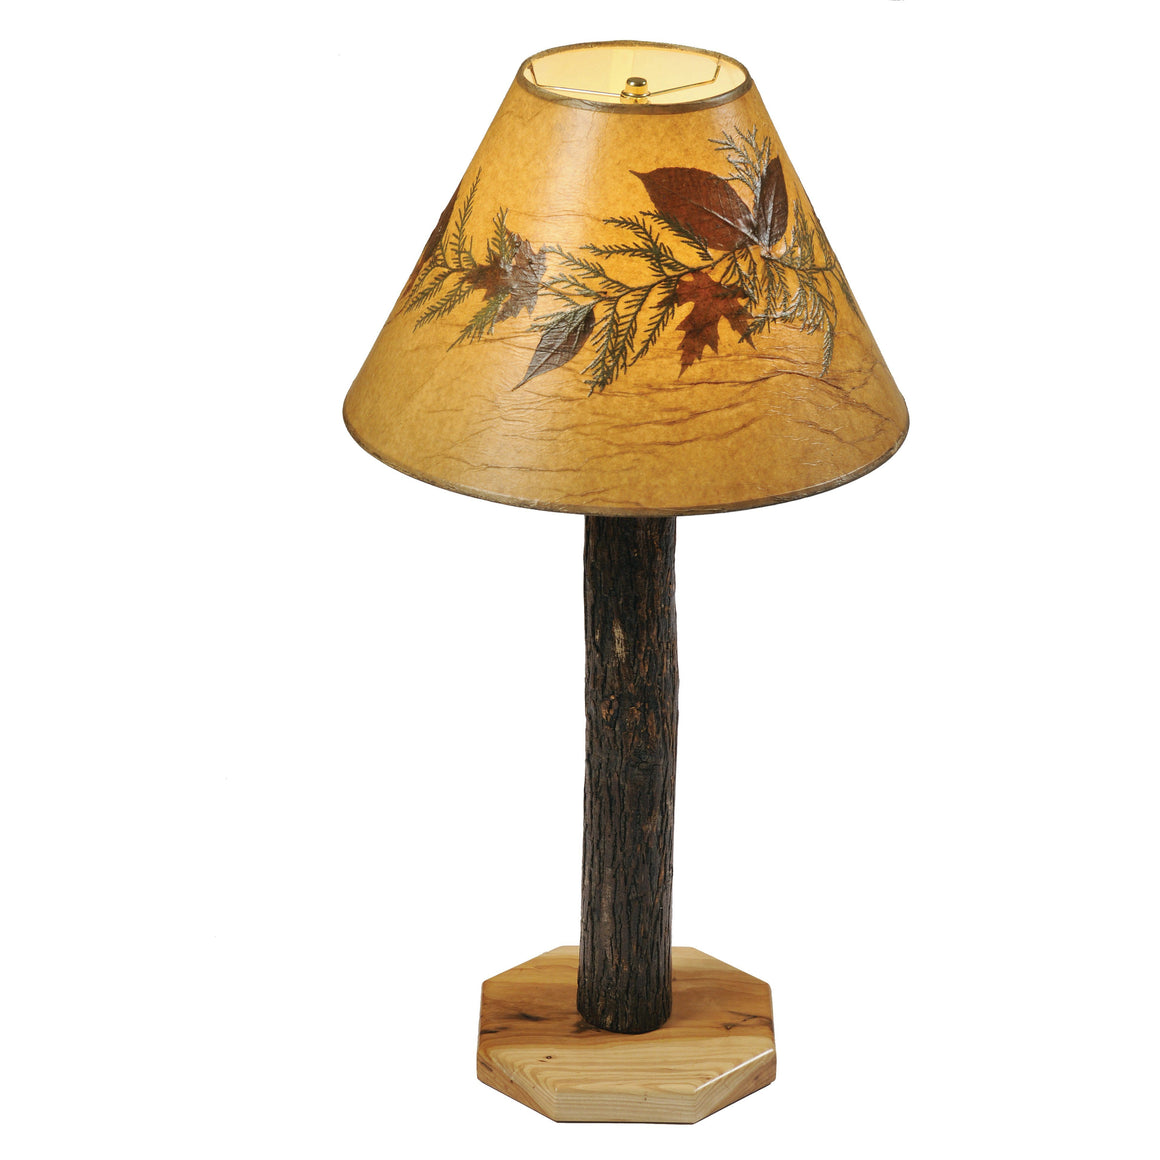 Authentic Hickory Log Buffet Table Lamp - Handcrafted USA-Rustic Deco Incorporated